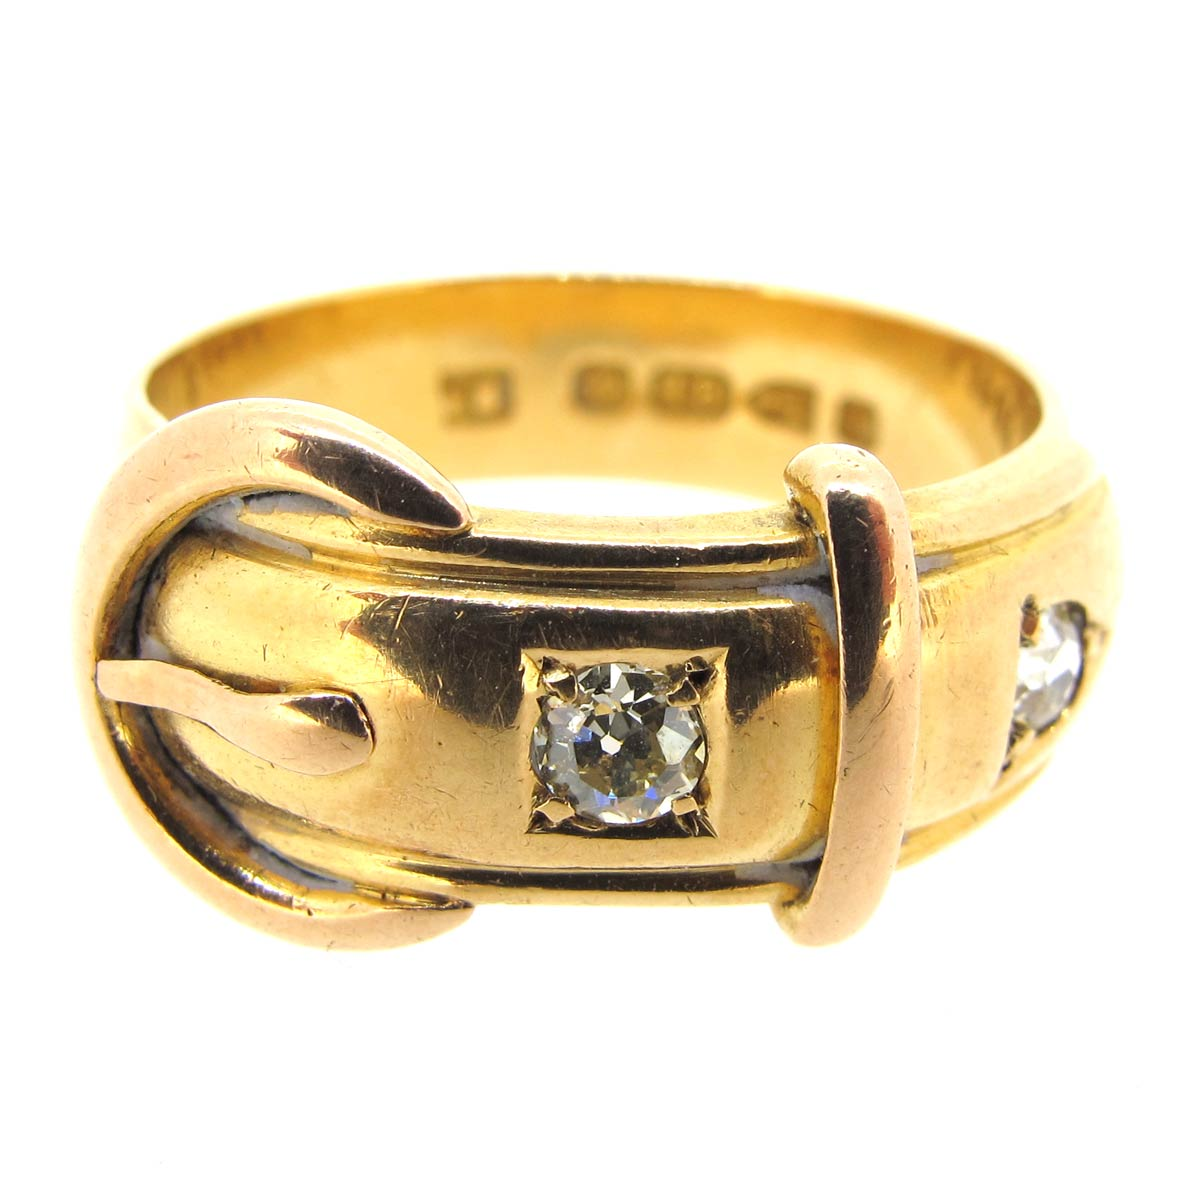 Antique Gold & Diamond Buckle Ring